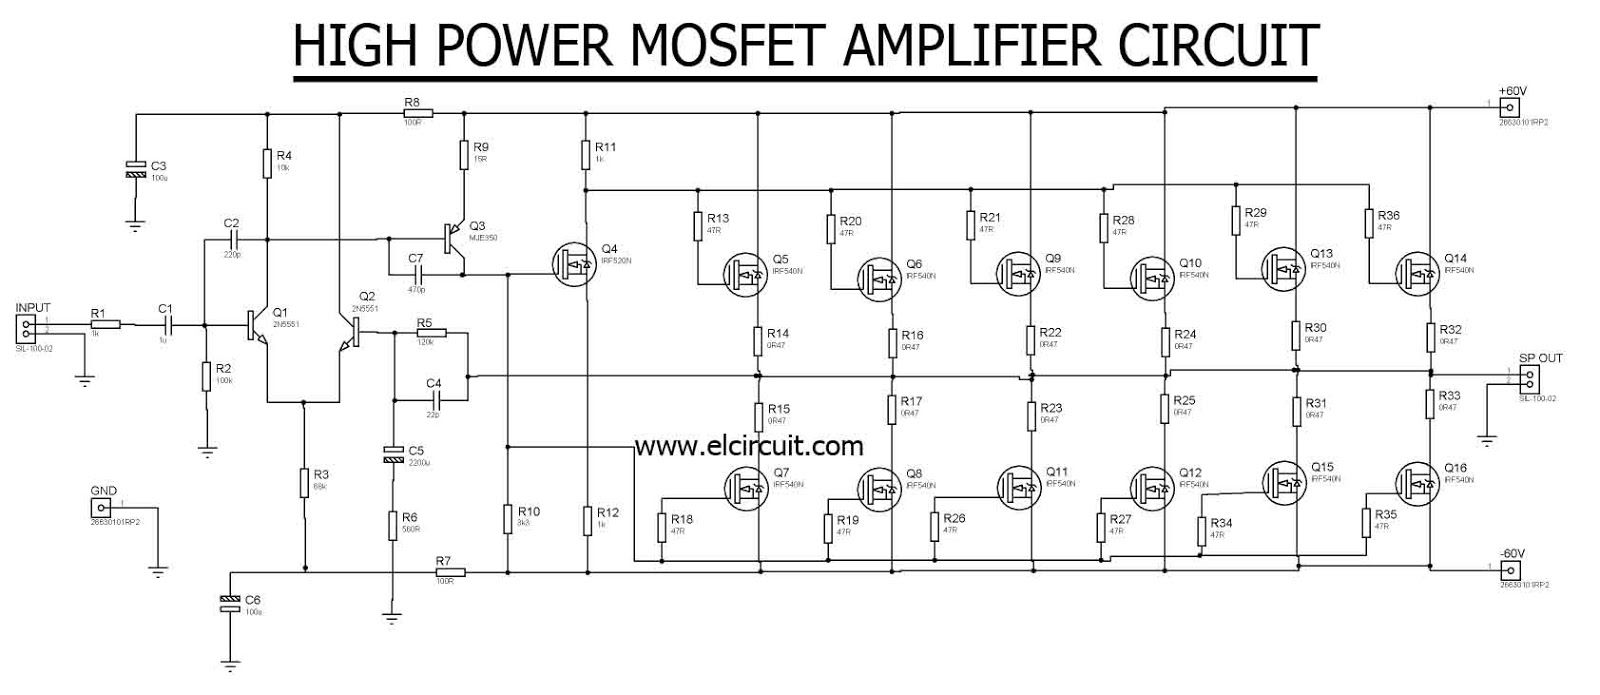 subwoofer amplifier circuit diagrams download manual e books Subwoofer Amplifier Gate Driver Circuit high power mosfet amplifier irf540n in 2019 audio circuit subwoofer amplifier circuit diagrams download